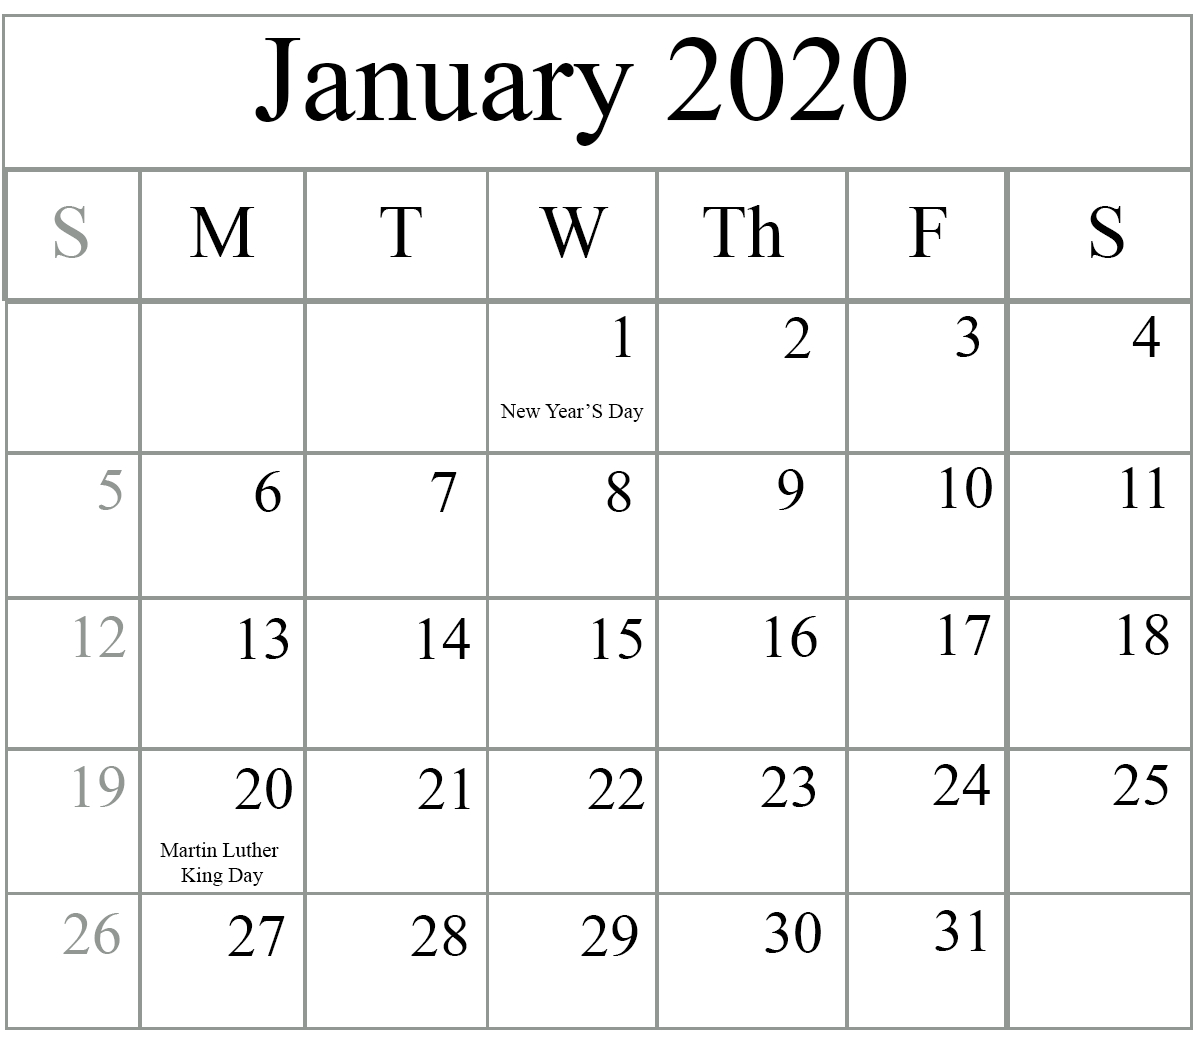 Free Blank January 2020 Calendar Printable In Pdf, Word, Excel Calendars You Can Edit